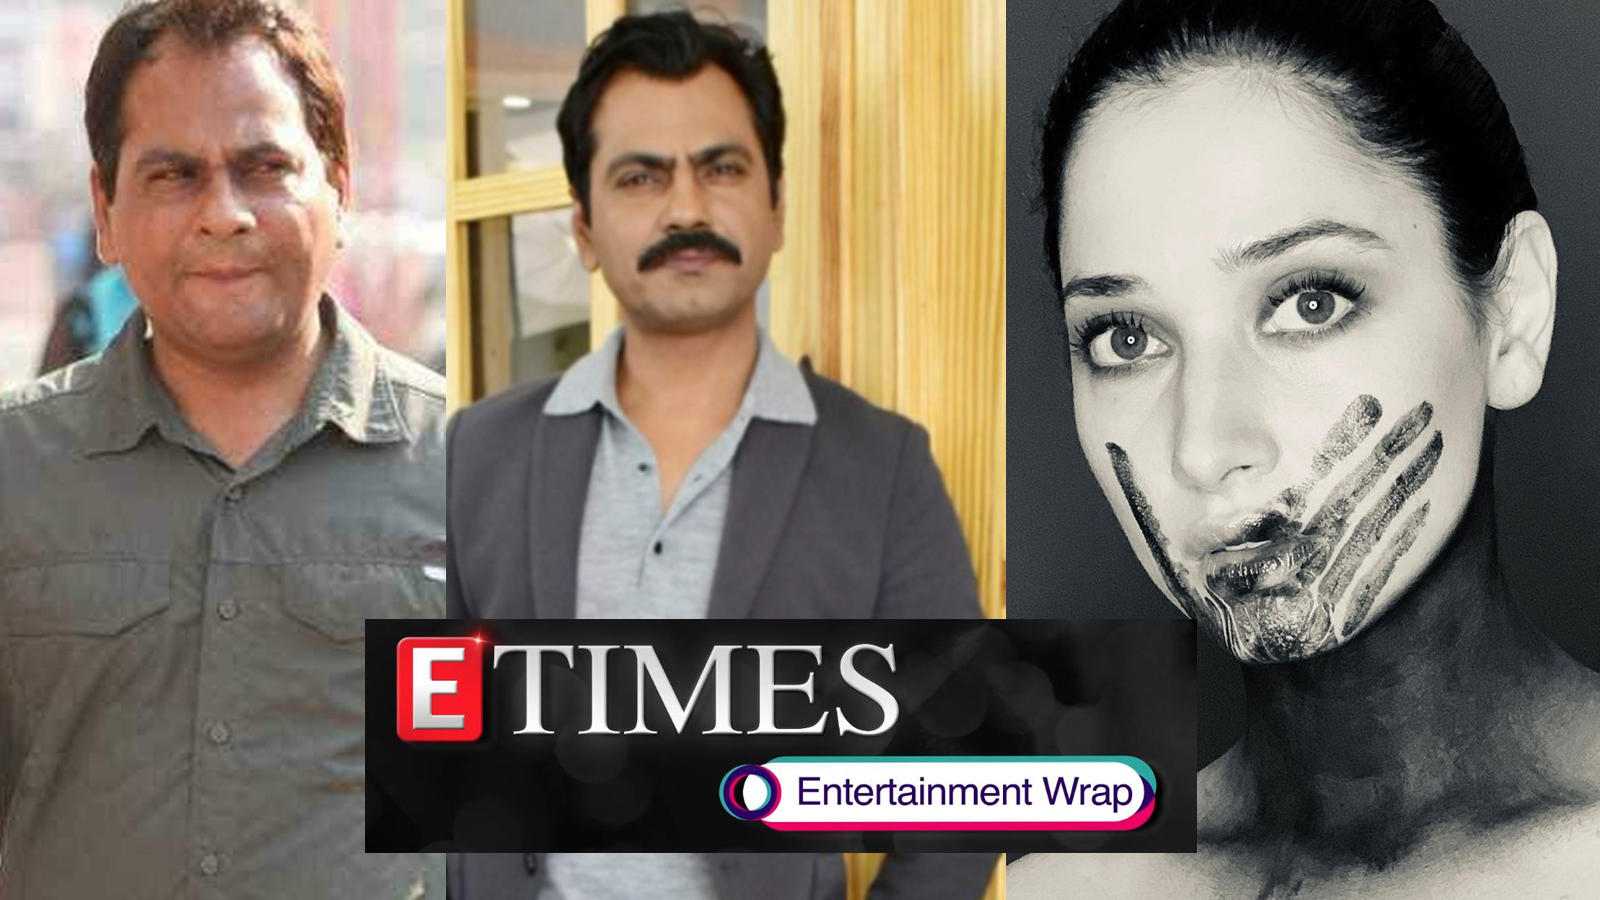 nawazuddin-siddiquis-brother-shamas-reacts-to-nieces-sexual-harassment-allegations-tamannaah-bhatias-powerful-picture-says-a-thousand-words-about-prejudices-in-society-and-more-